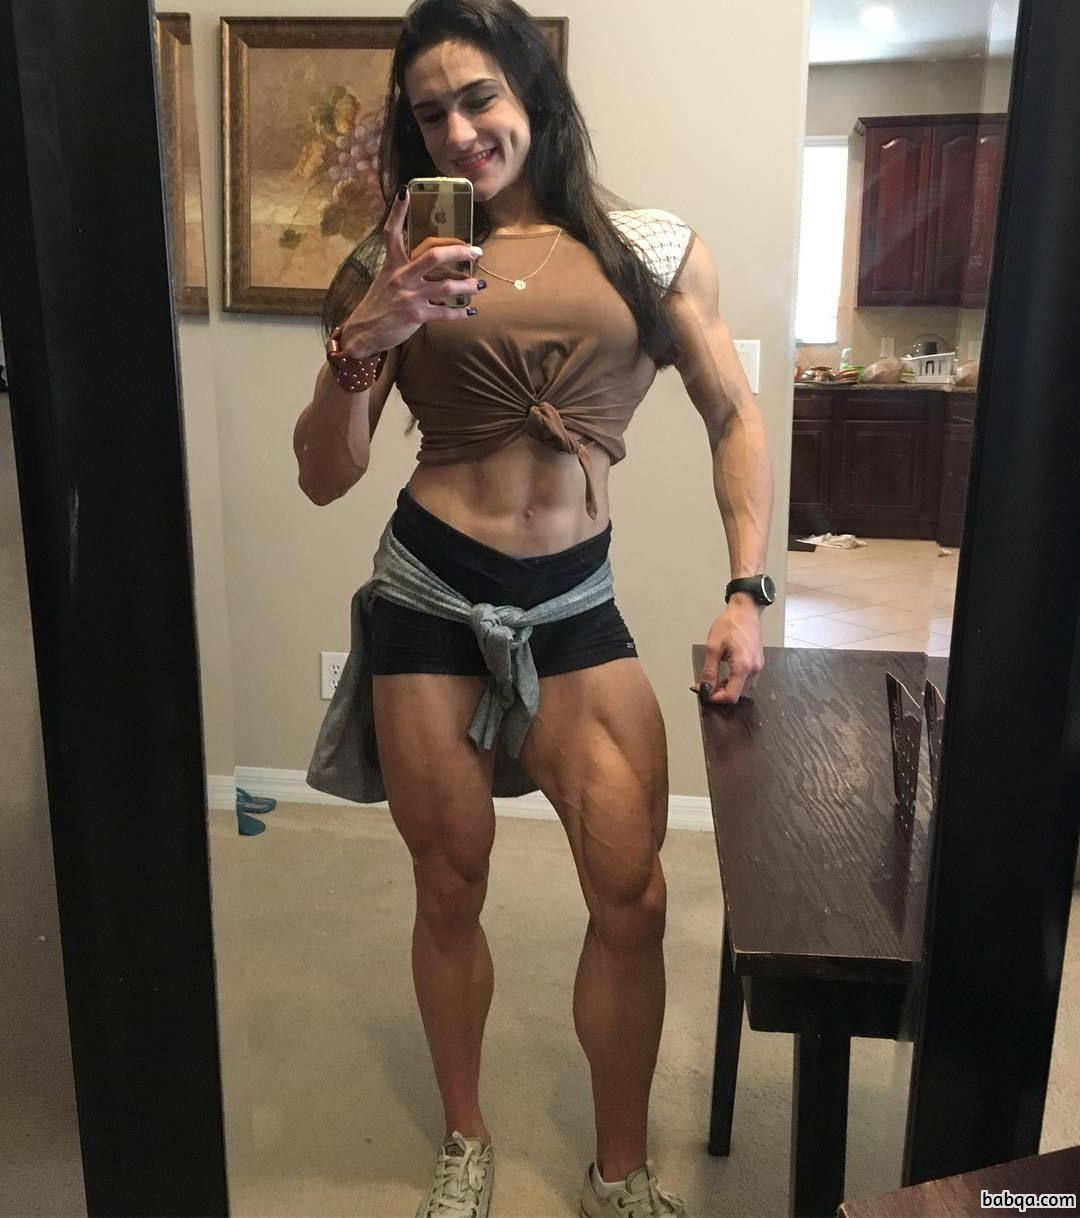 hottest lady with fitness body and toned bottom picture from linkedin